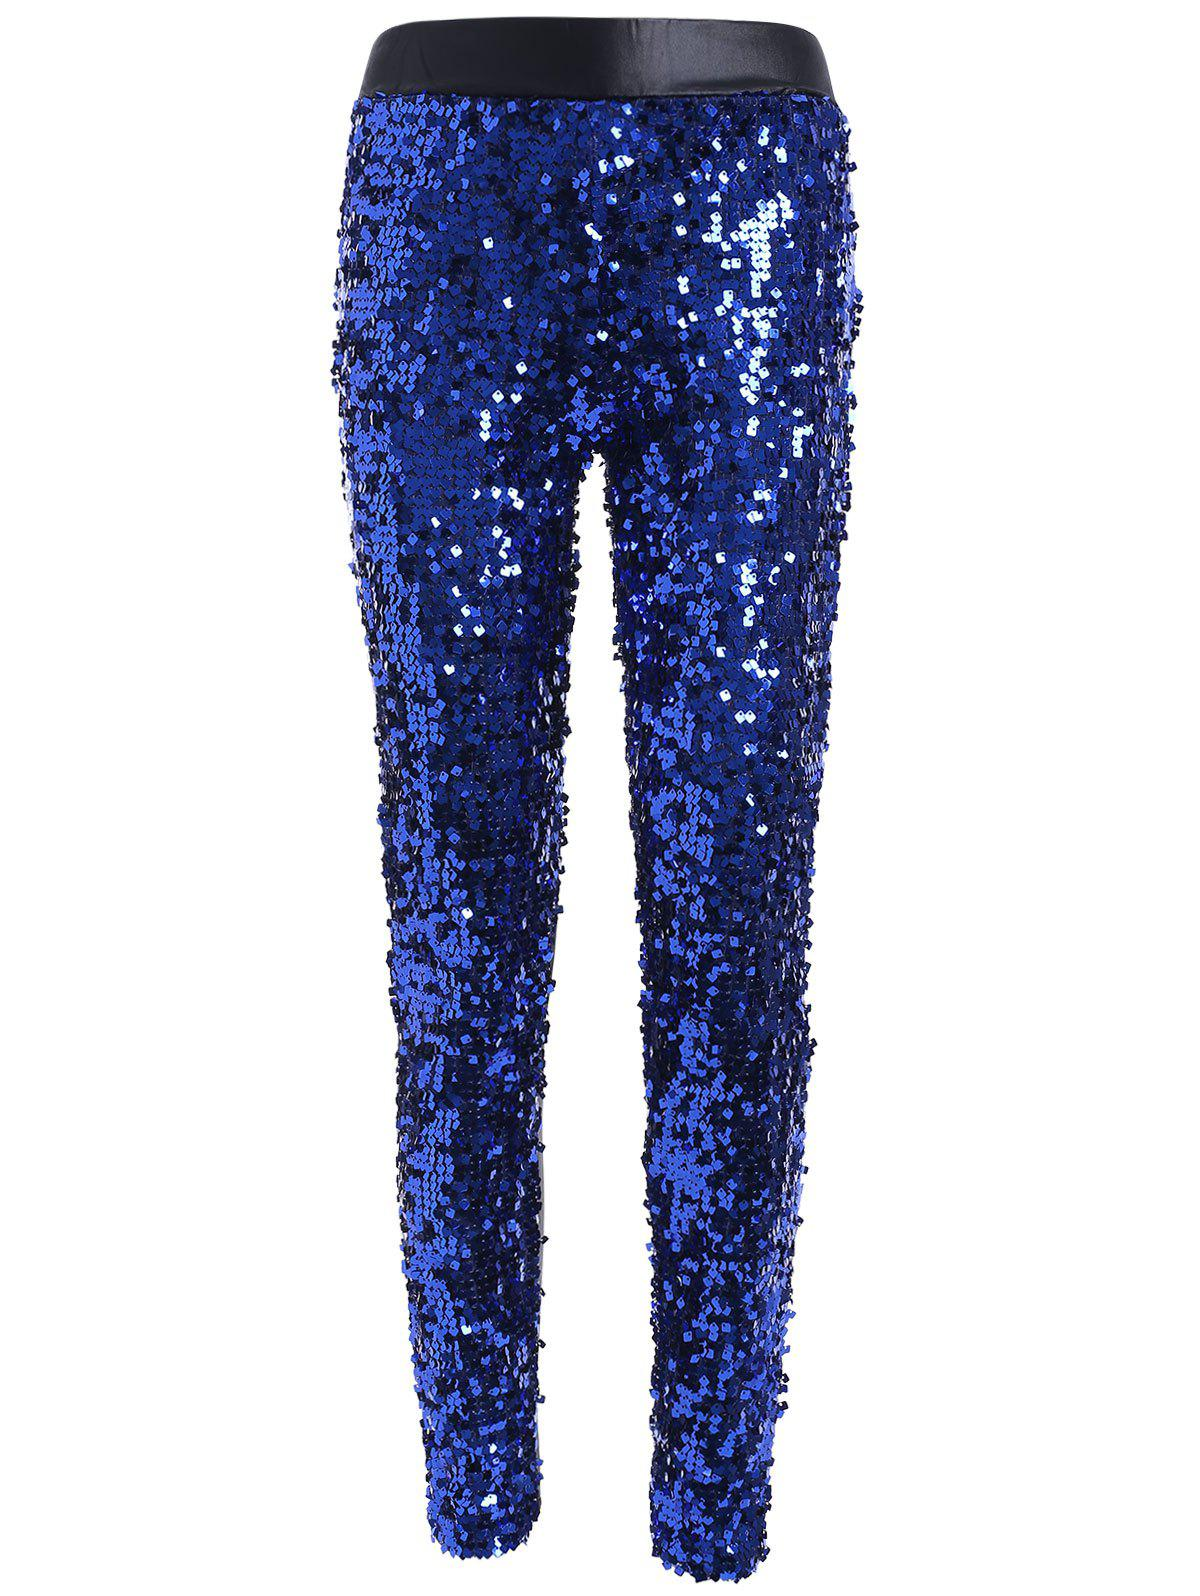 Faux Lether Sequins Glitter Pencil Pants - SAPPHIRE BLUE ONE SIZE